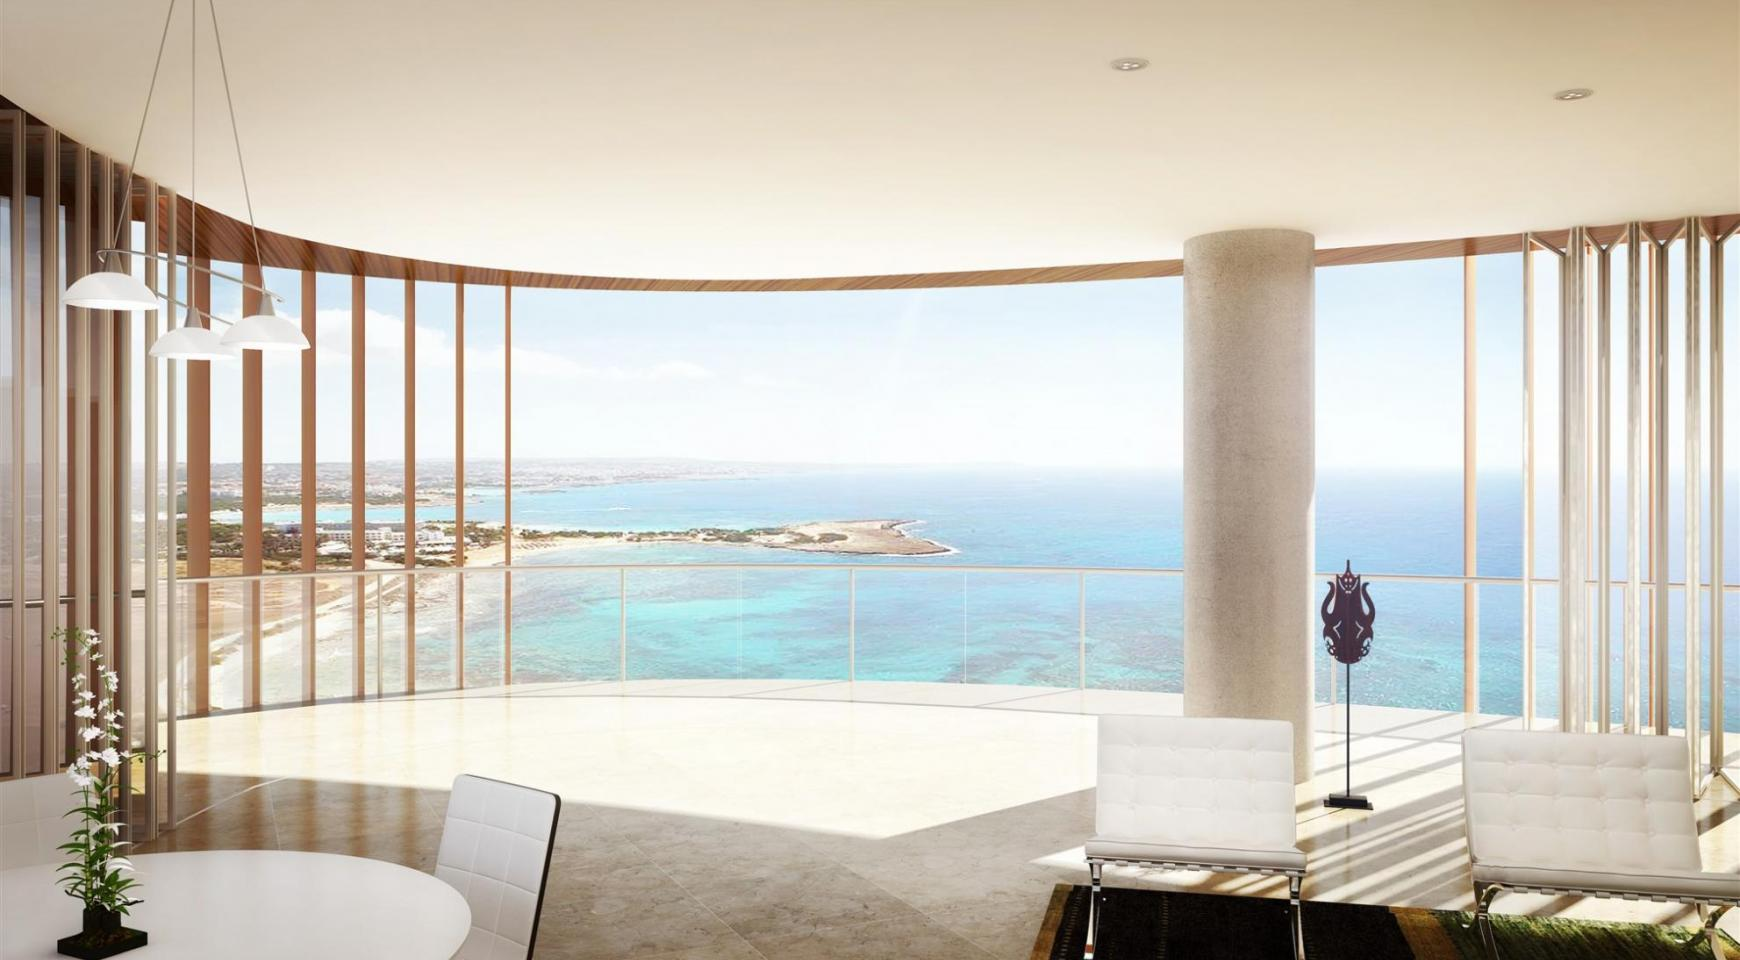 2 Bedroom Apartment in an Exclusive Project by the Sea - 22